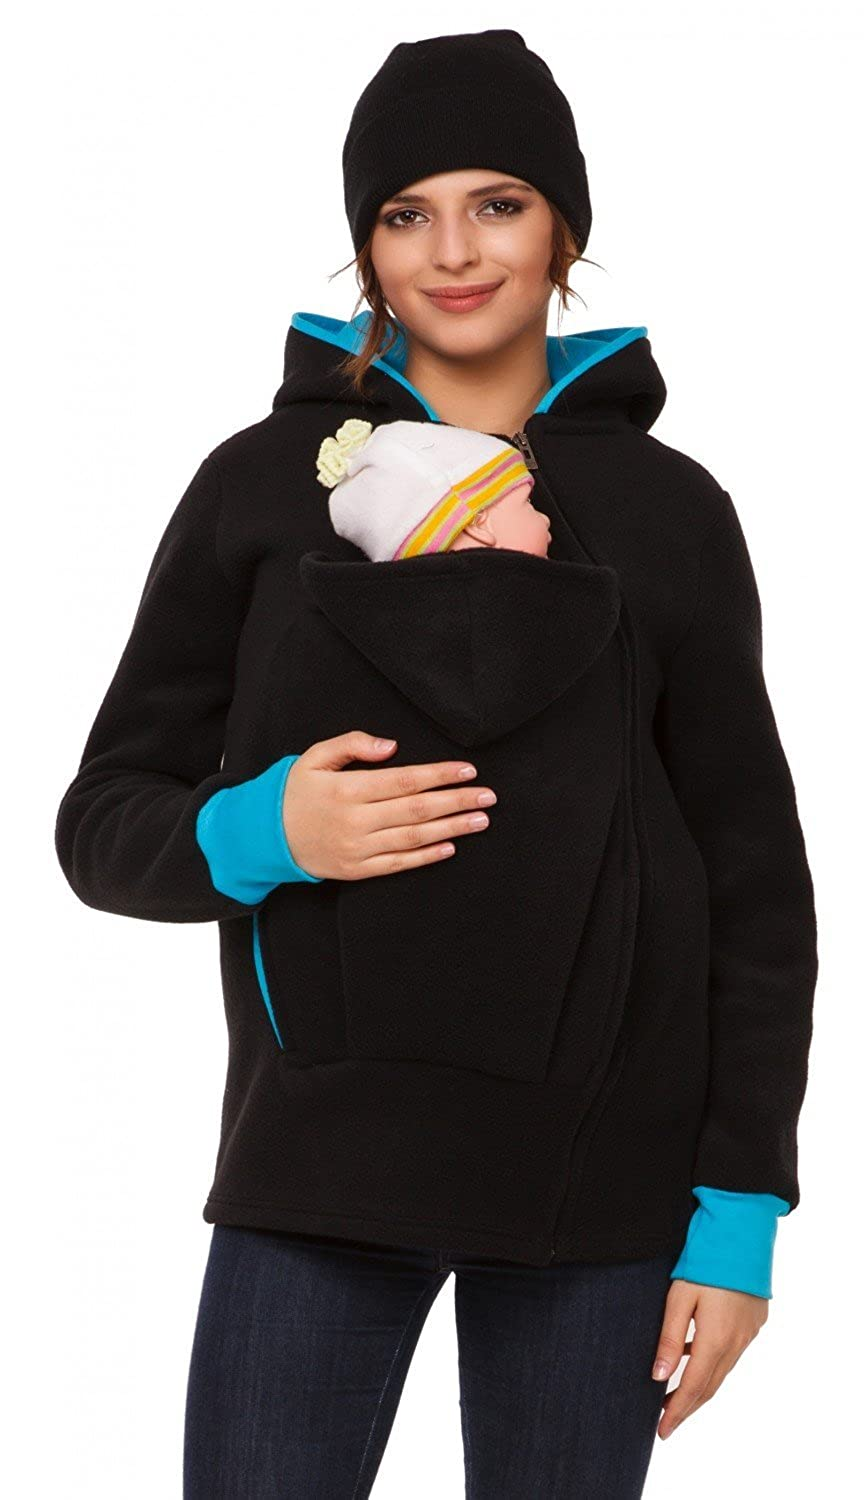 81927c9d15a Fleece hoodie /sweatshirt with practical pocket with small hood that allows  you to carry your baby in a wrap sling. True to size and great fit for  every ...